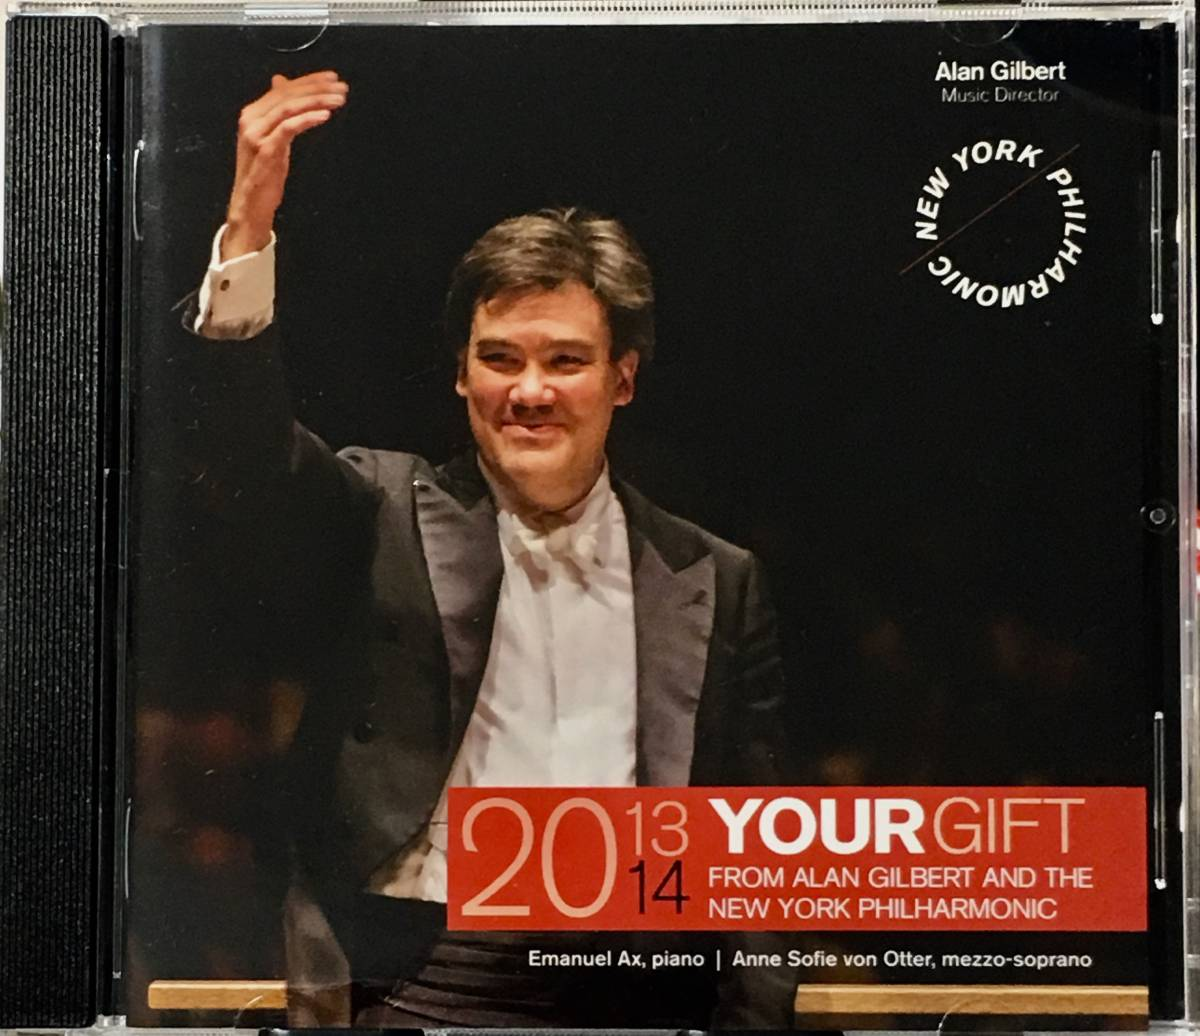 (Z0H)★レア盤/CREDIT SUISSE/2013-14 Your Gift from Alan Gilbert & The Newyork Philharmonic/Emanuel Ax/Anne Sofie von Otter★_画像3